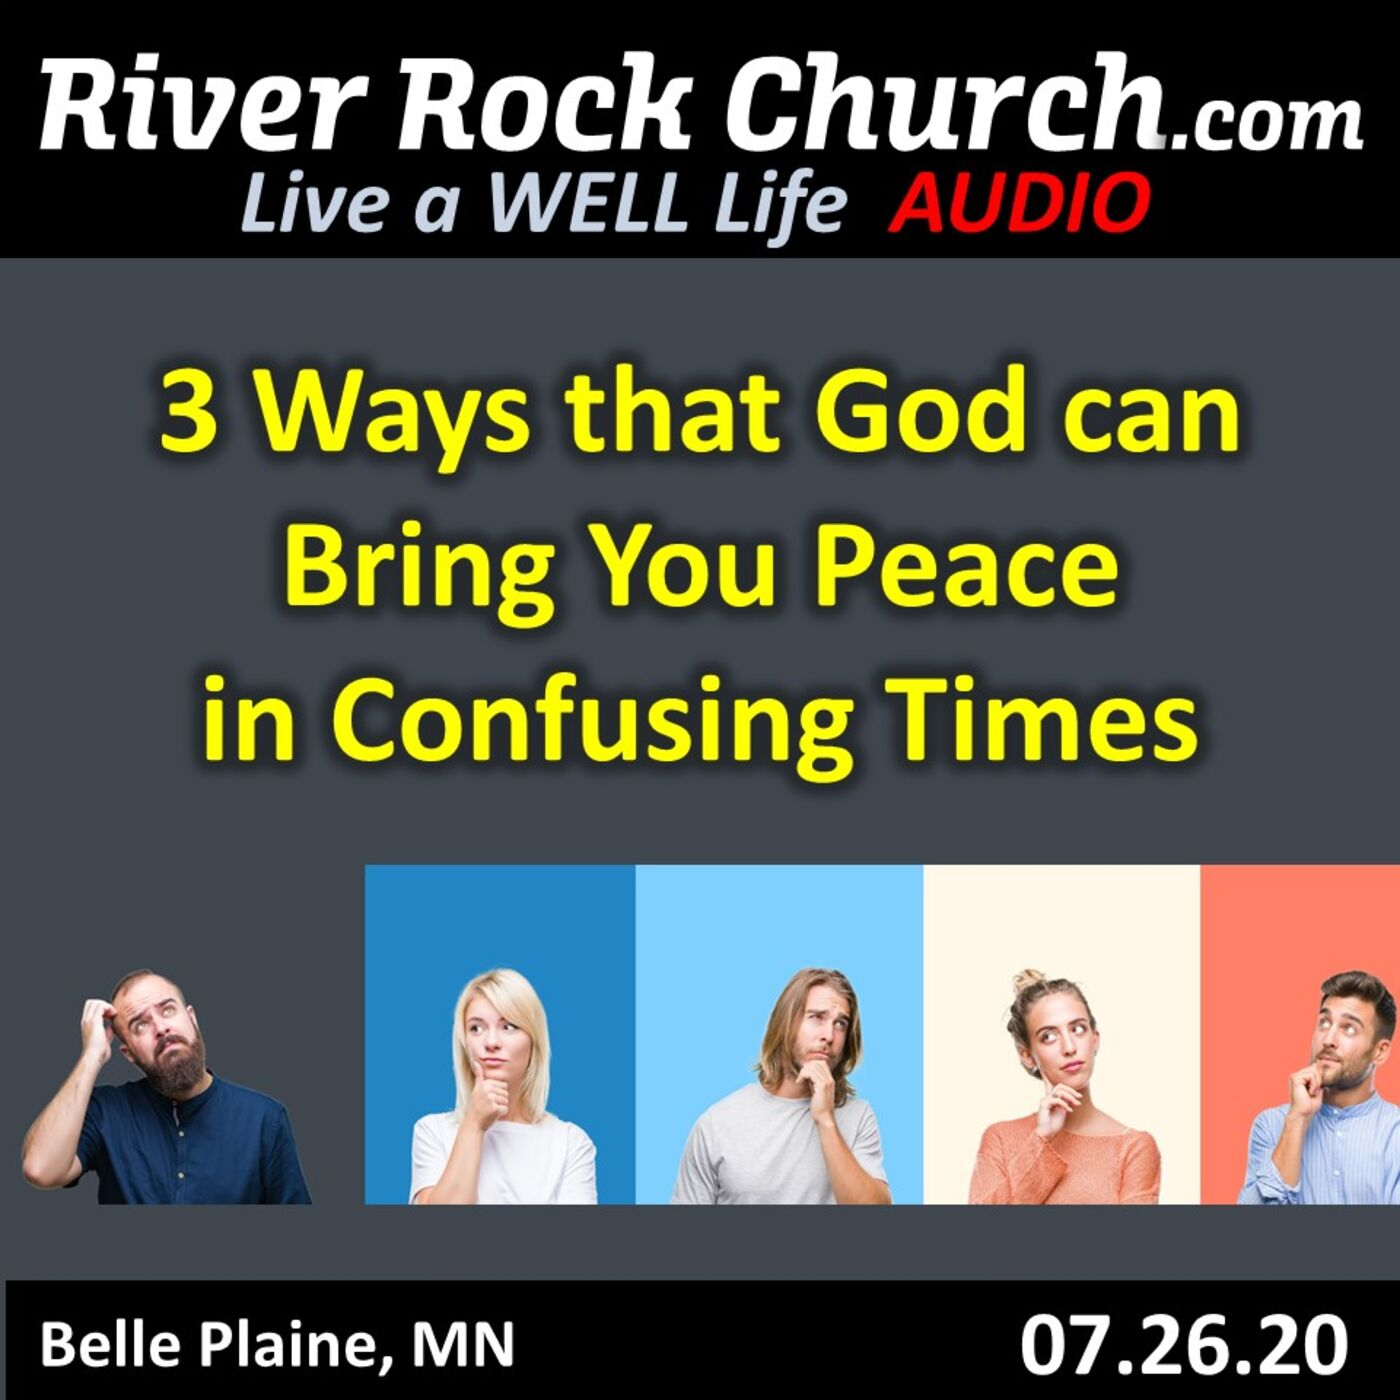 3 Ways that God can Bring You Peace in Confusing Times